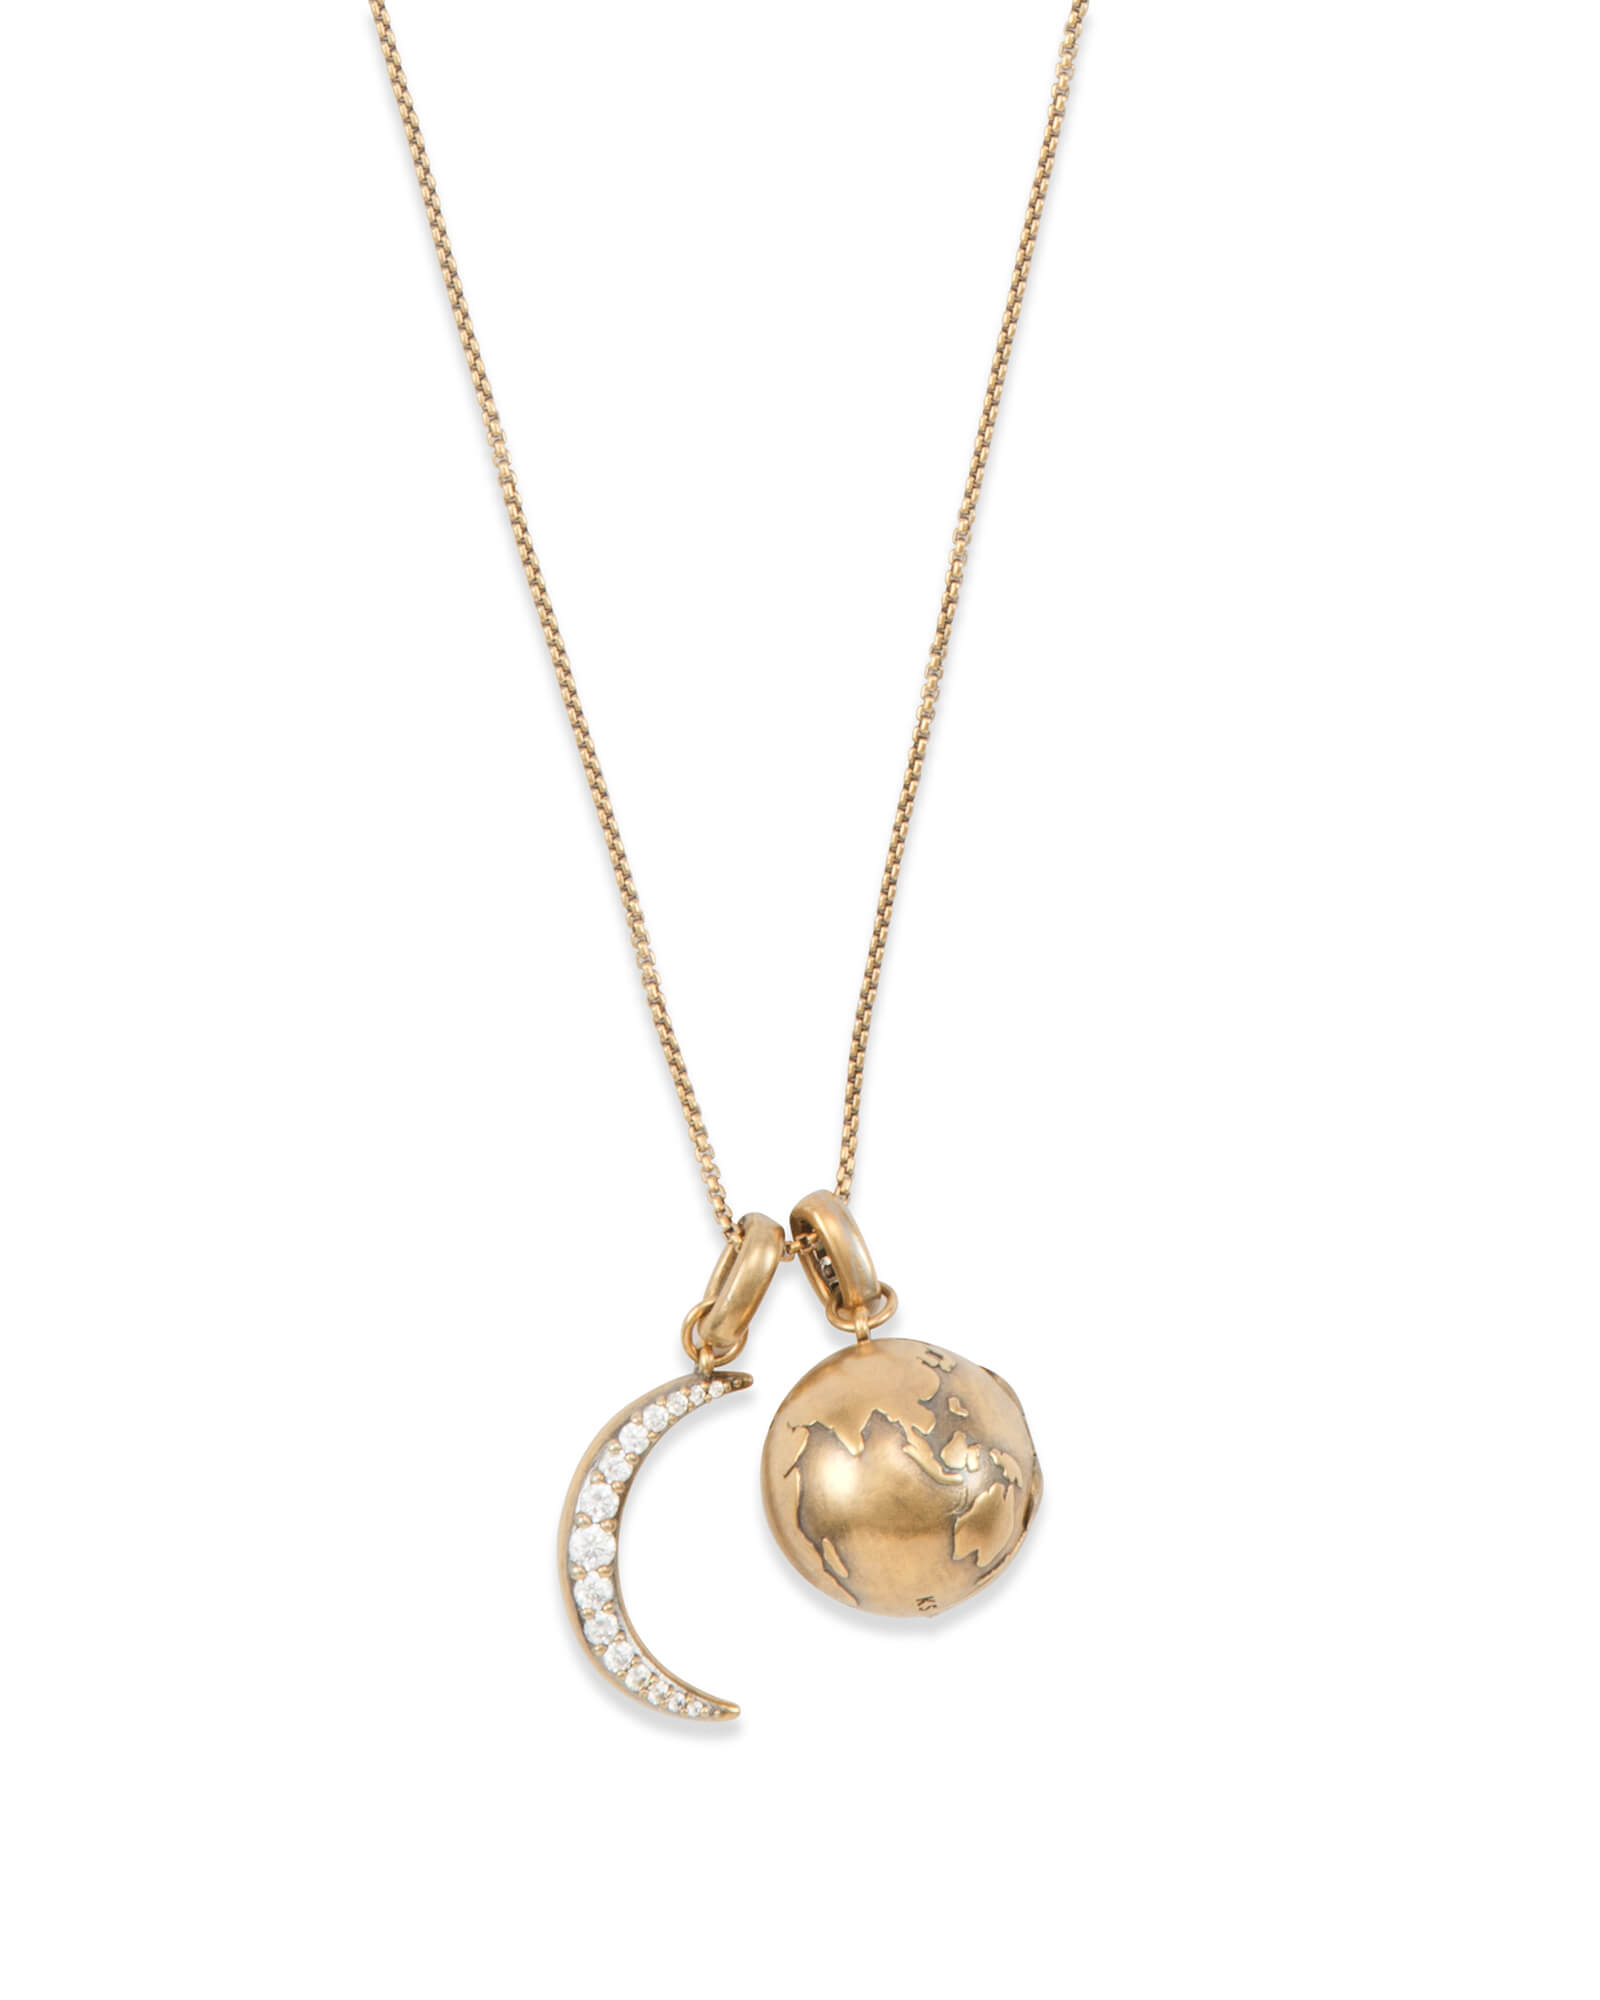 To the Moon and Back Charm Necklace Set in Vintage Gold